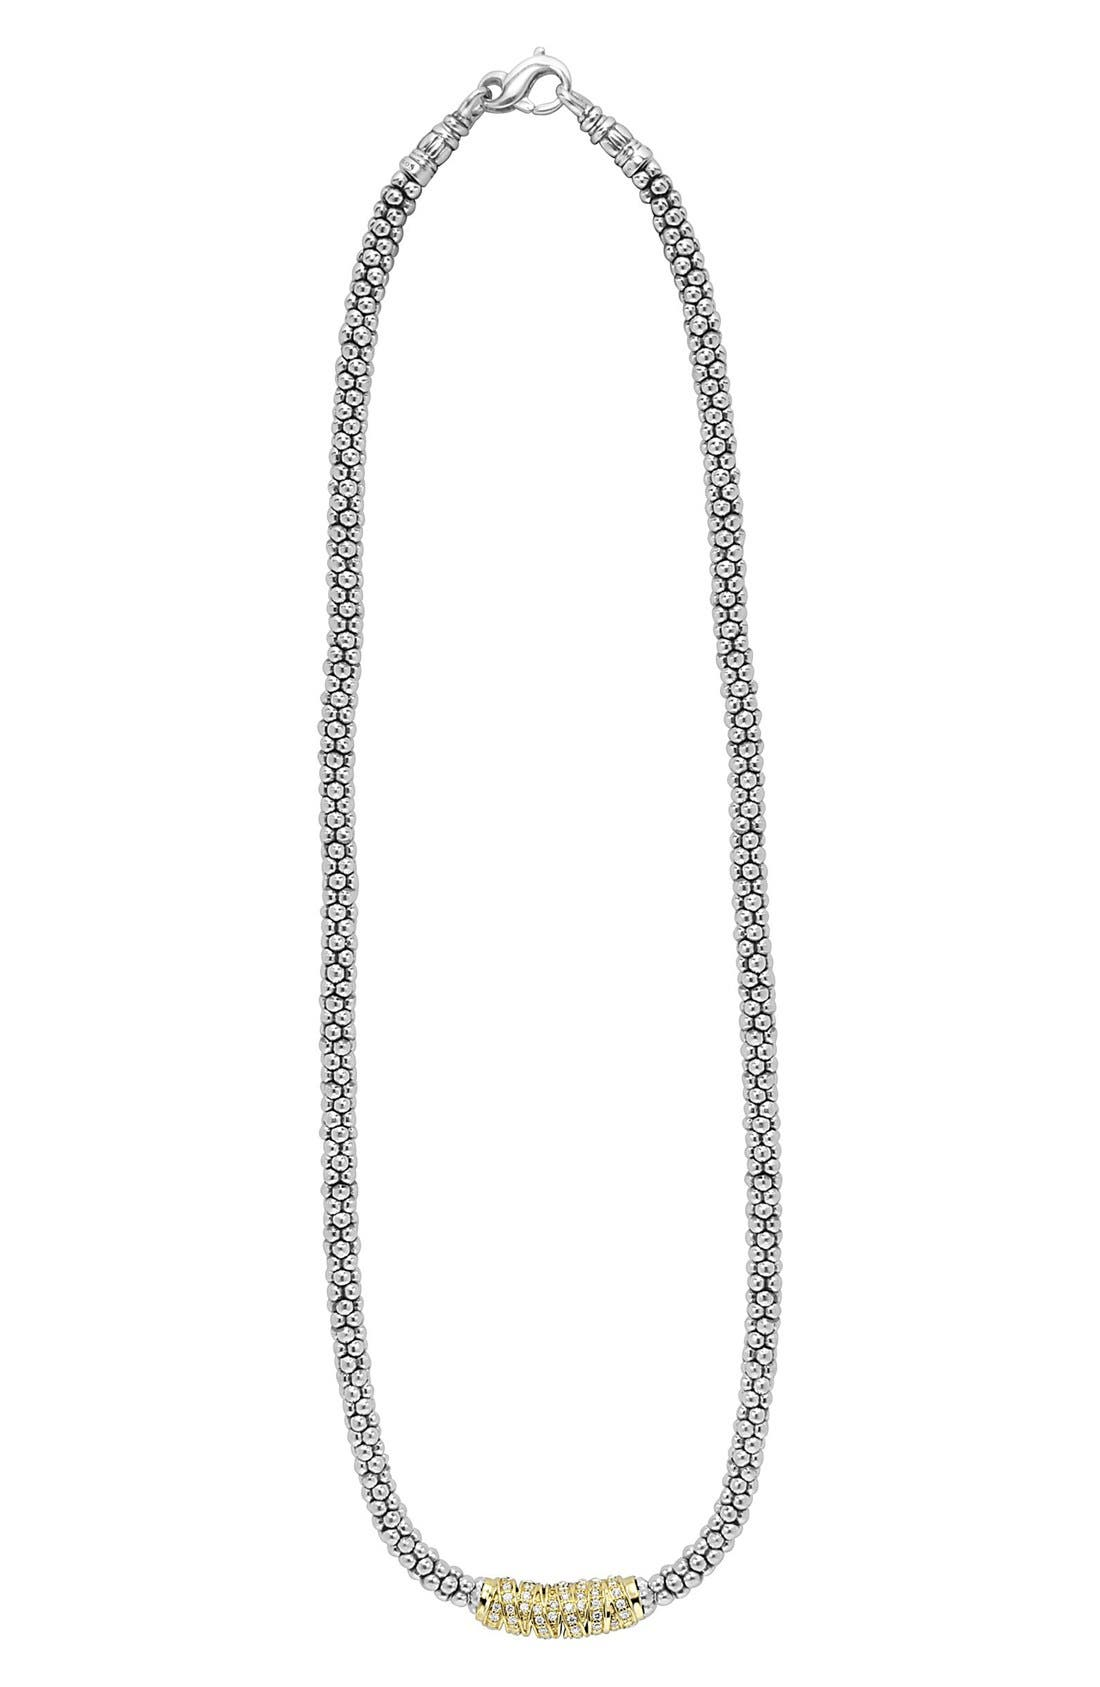 Embrace Rope Necklace,                         Main,                         color, Silver/ Gold